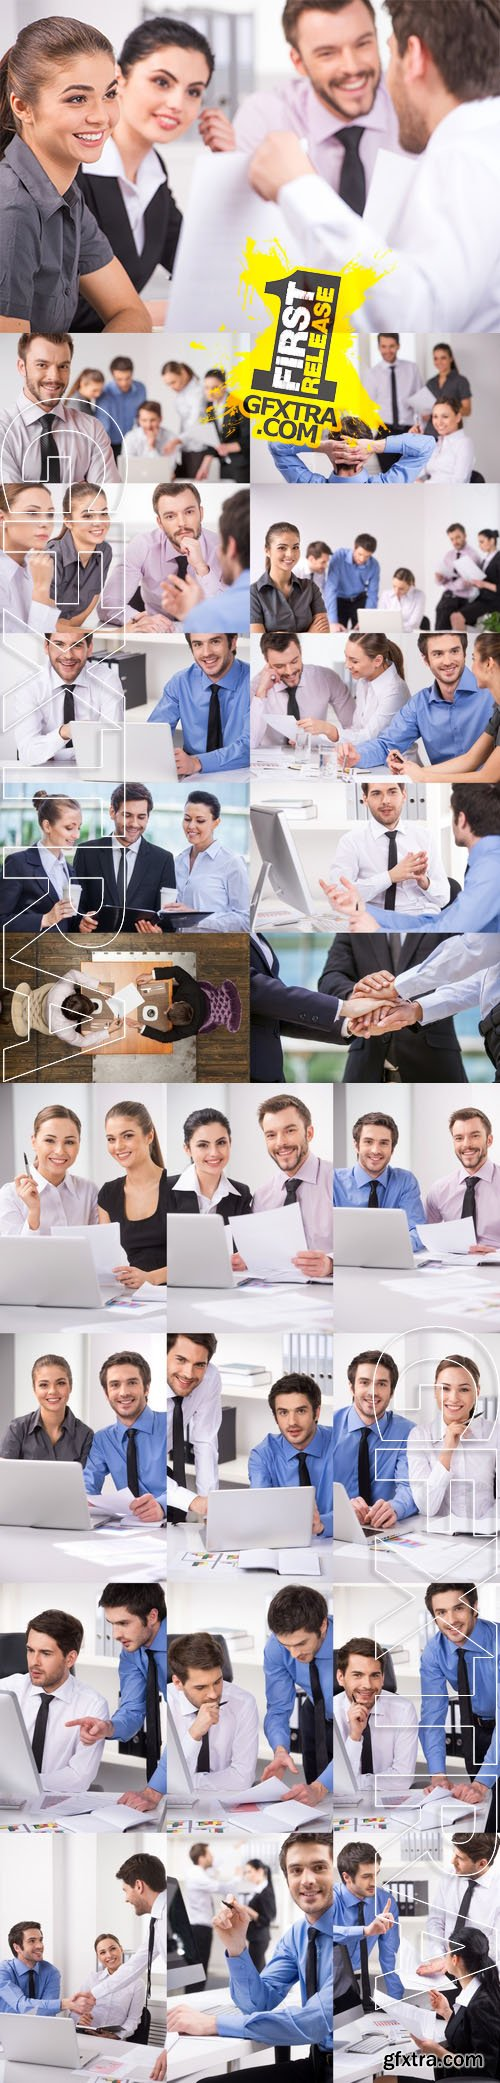 Stock Photos - Business People